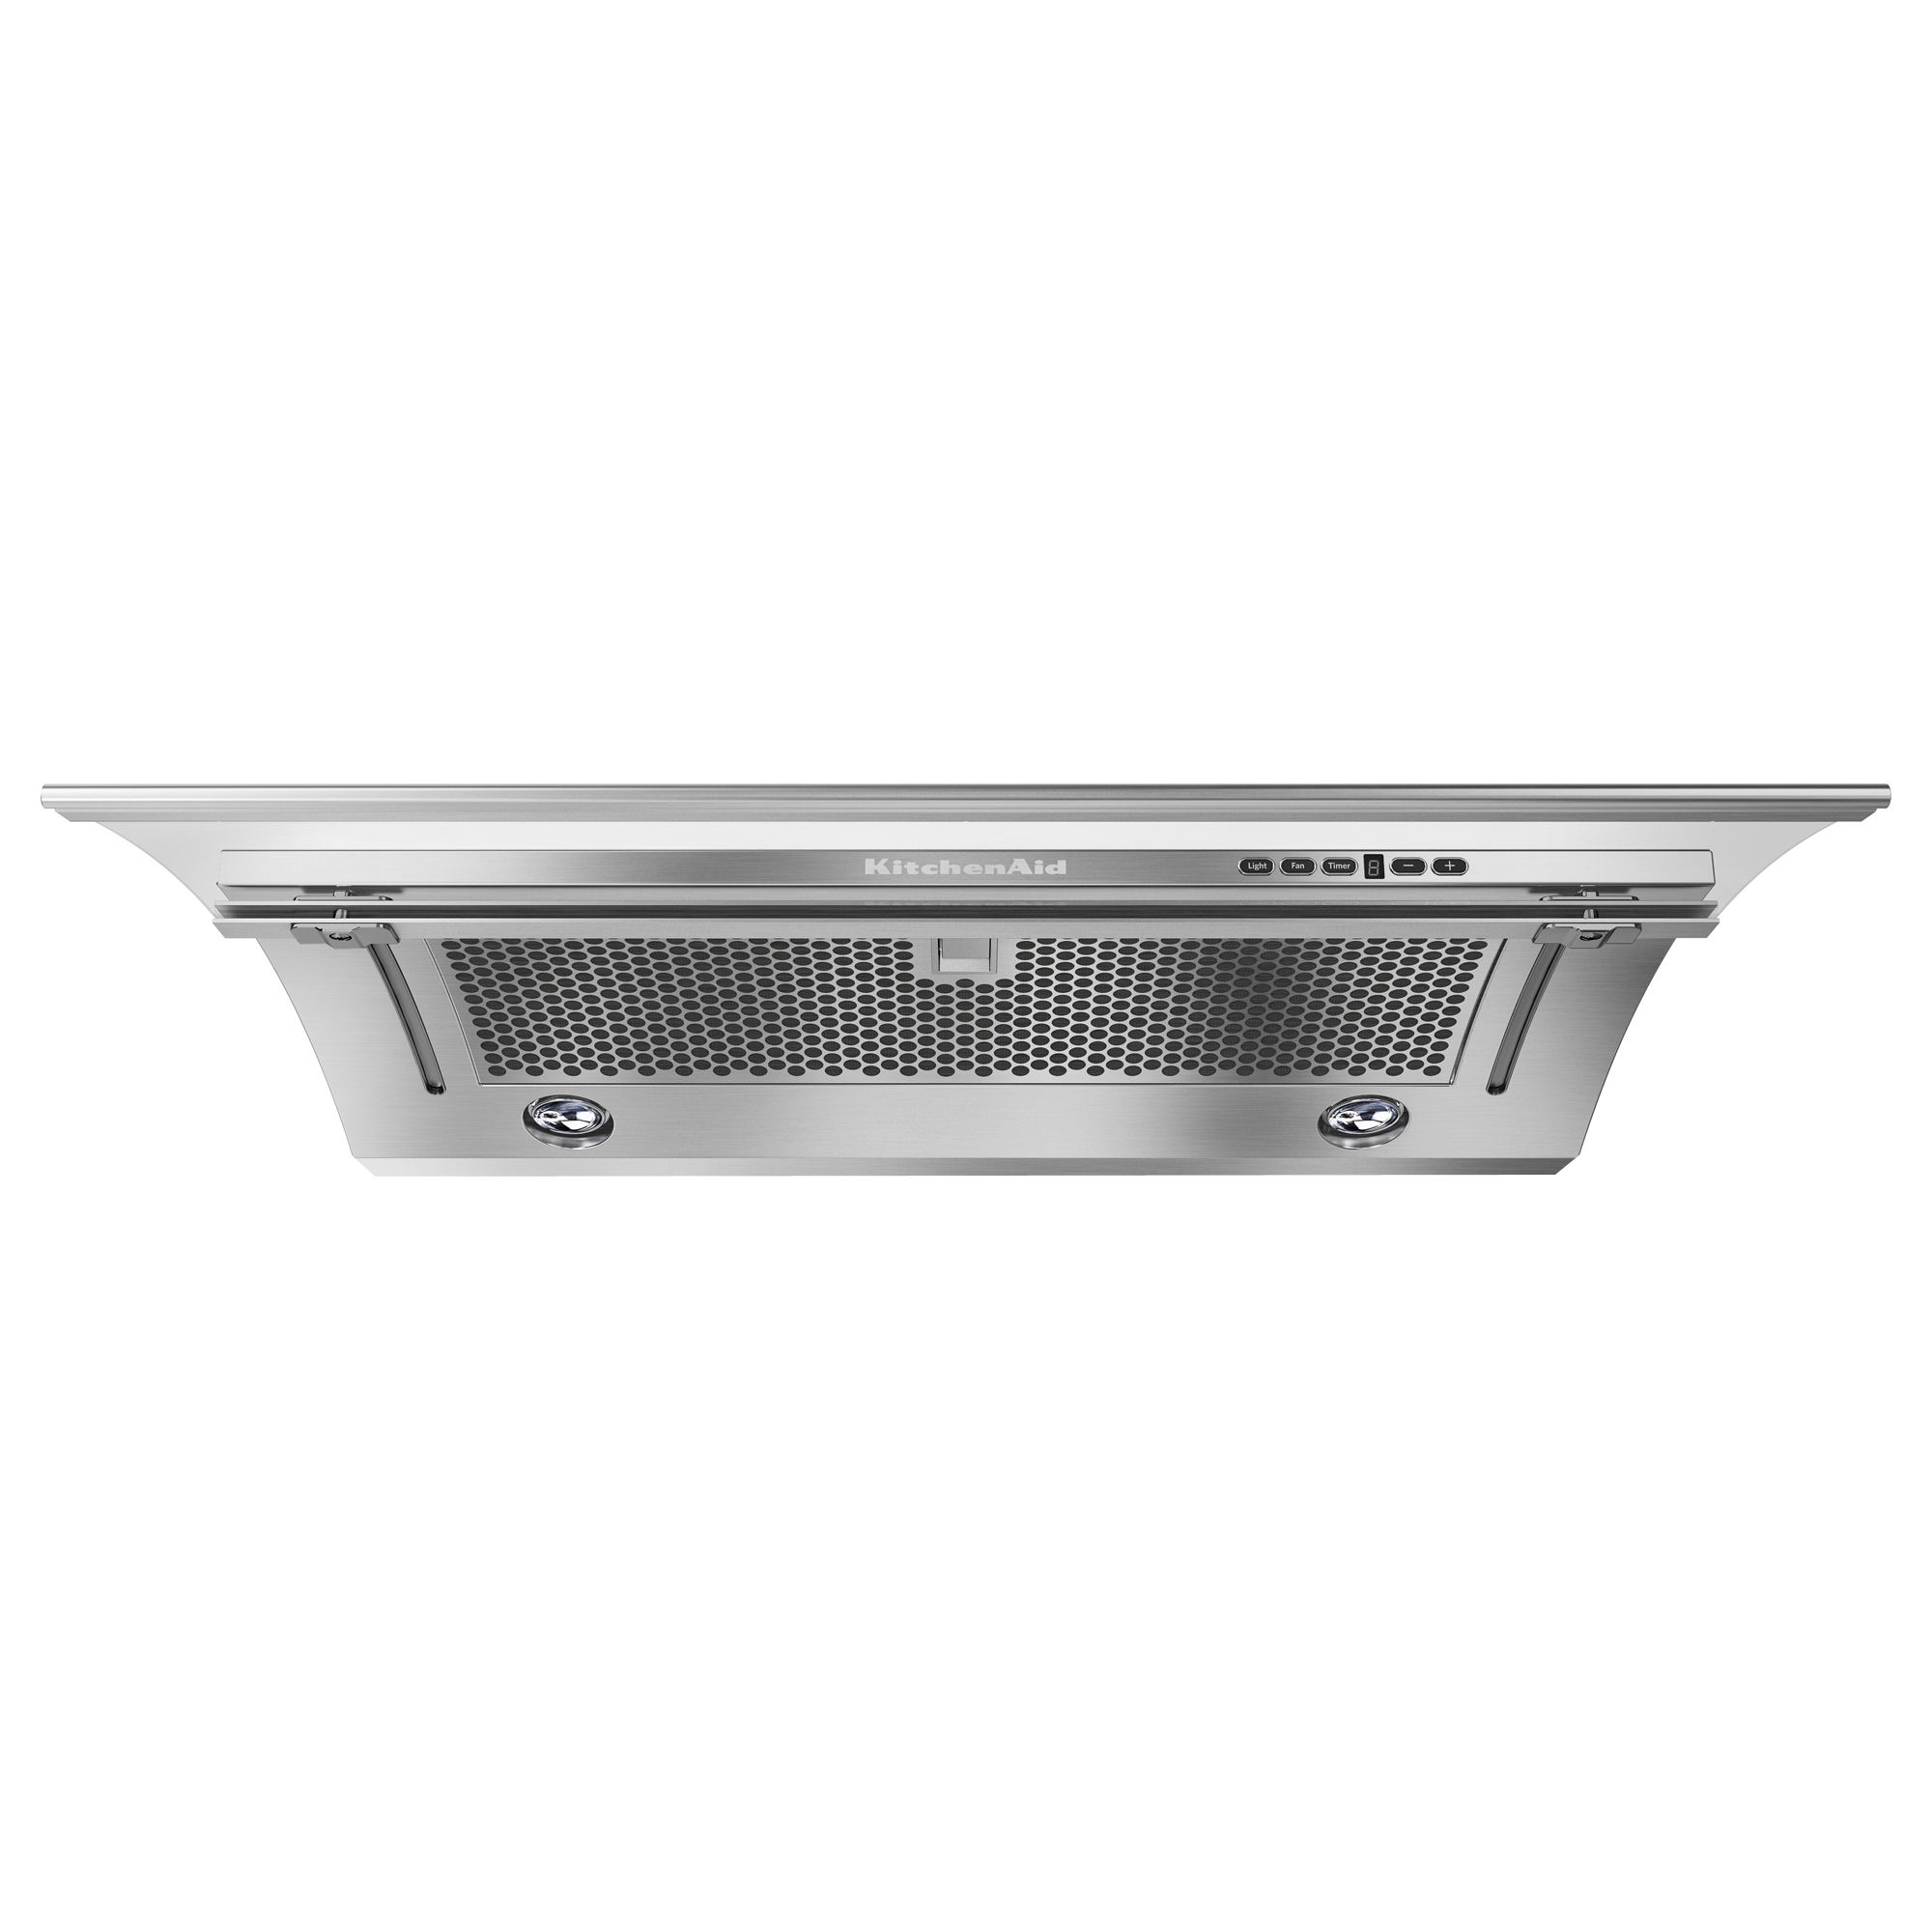 KitchenAid KXU2830YSS 30 in. Specialty Series Slide-Out Range Hood